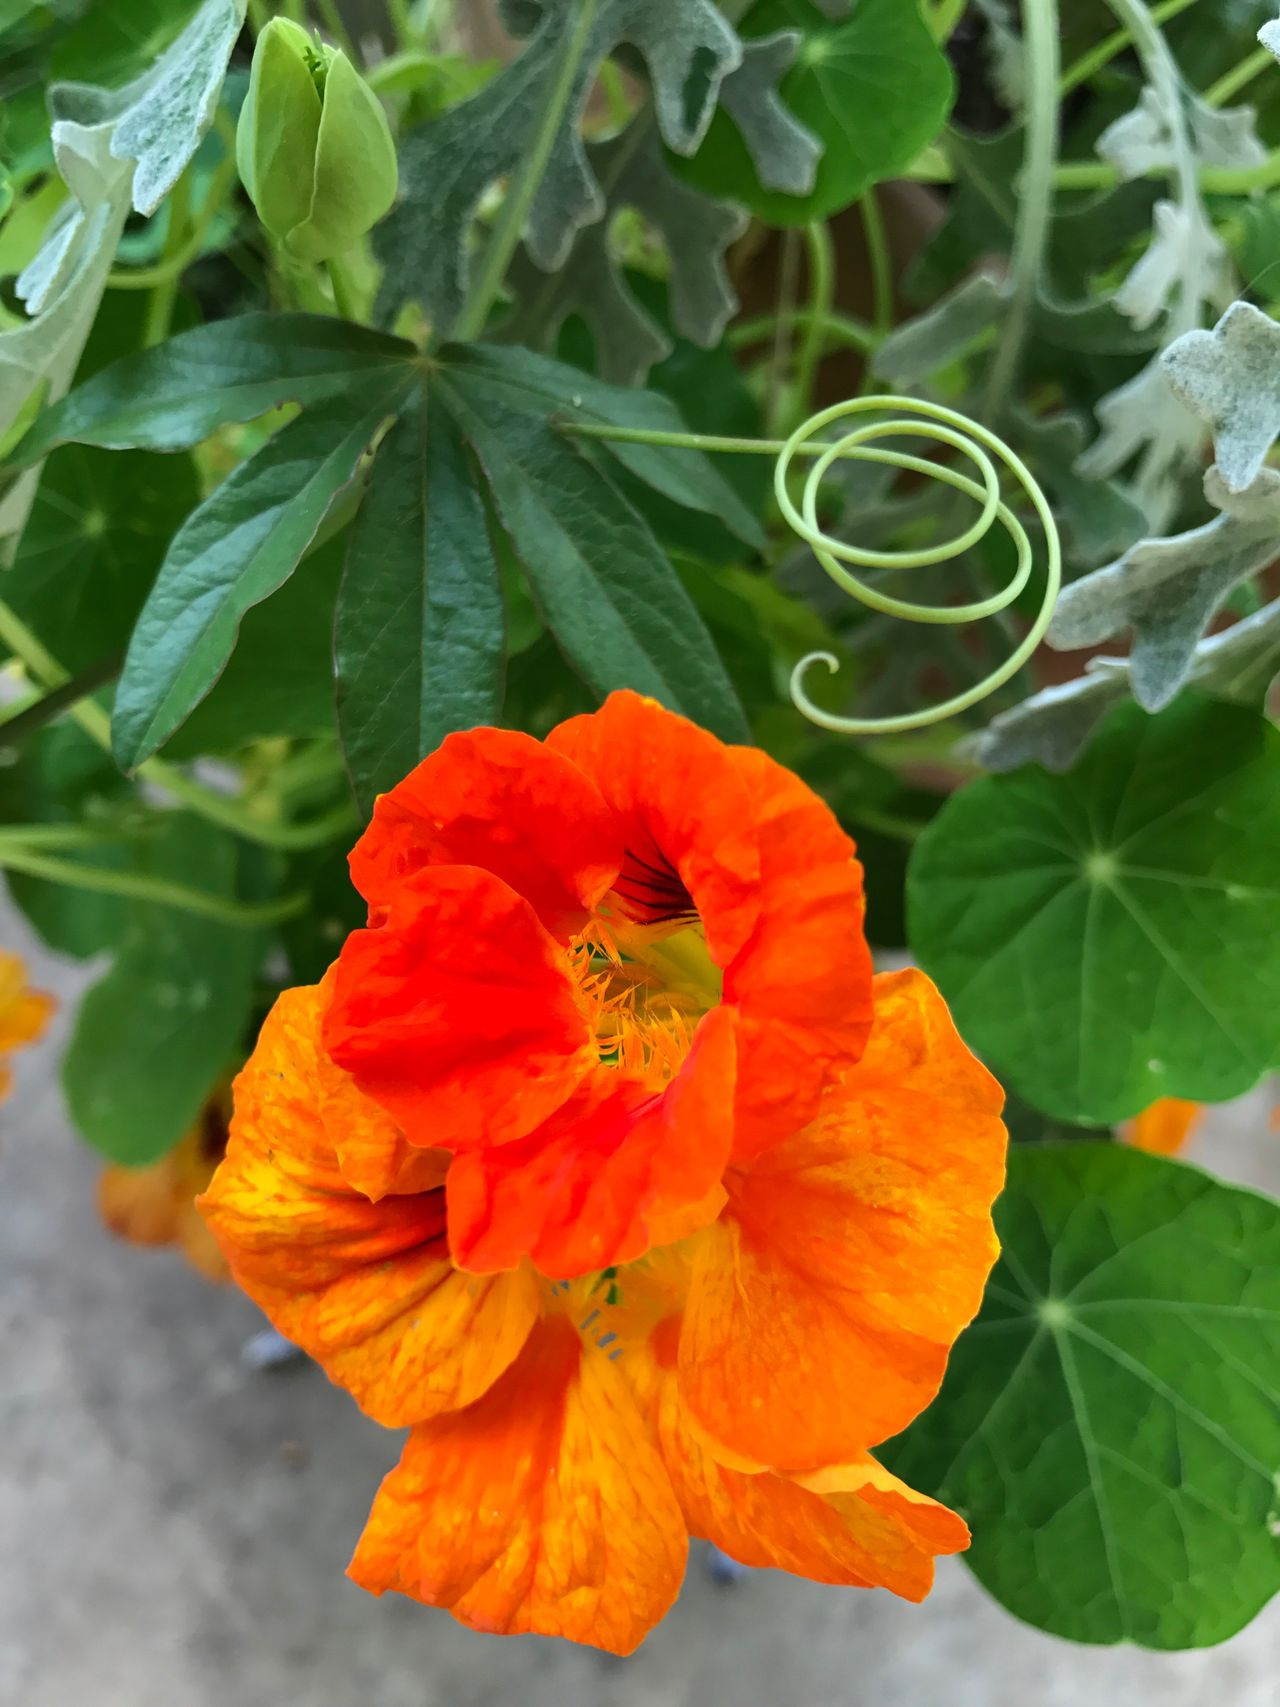 Swirl Nasturtium Flower Plant Growth Nature Beauty In Nature Blooming Leaf Petal Fragility Flower Head Green Color No People Close-up Freshness Outdoors Day Orange Tendril Green Color Swirly